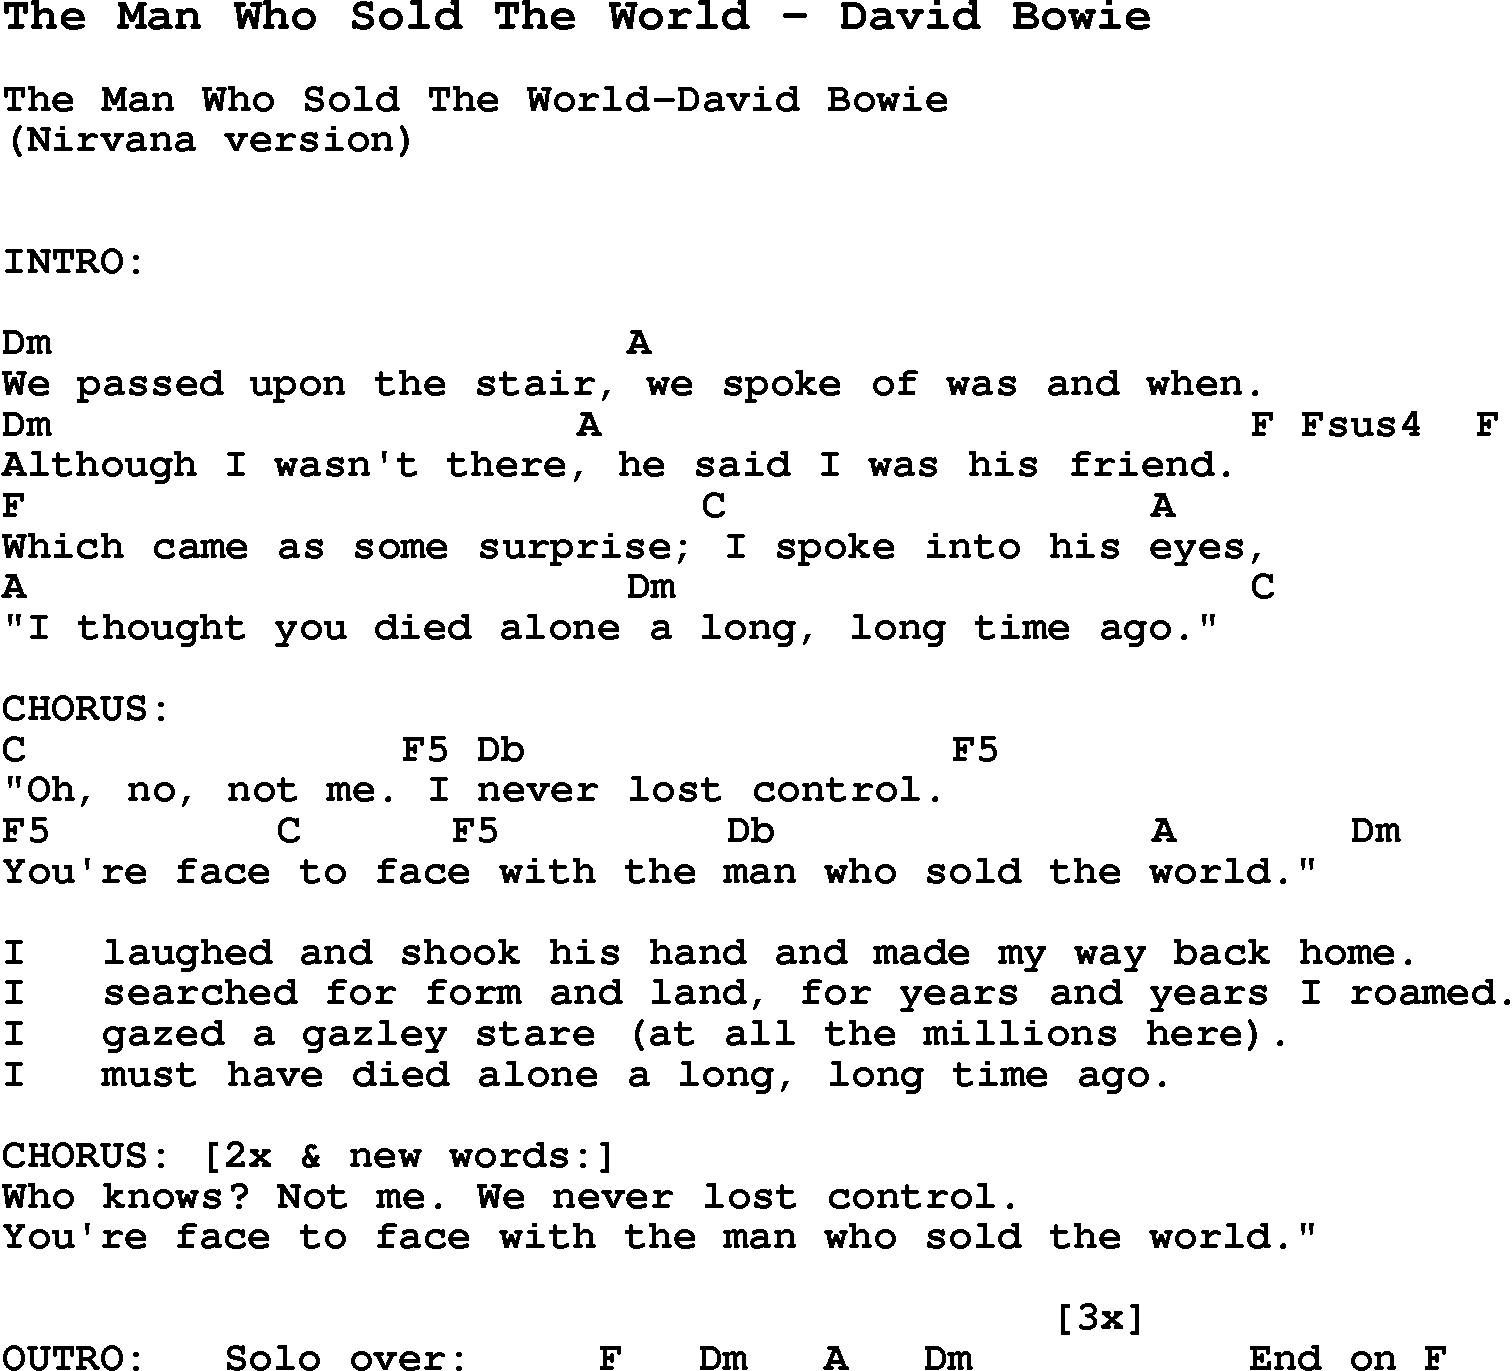 Song The Man Who Sold The World By David Bowie With Lyrics For